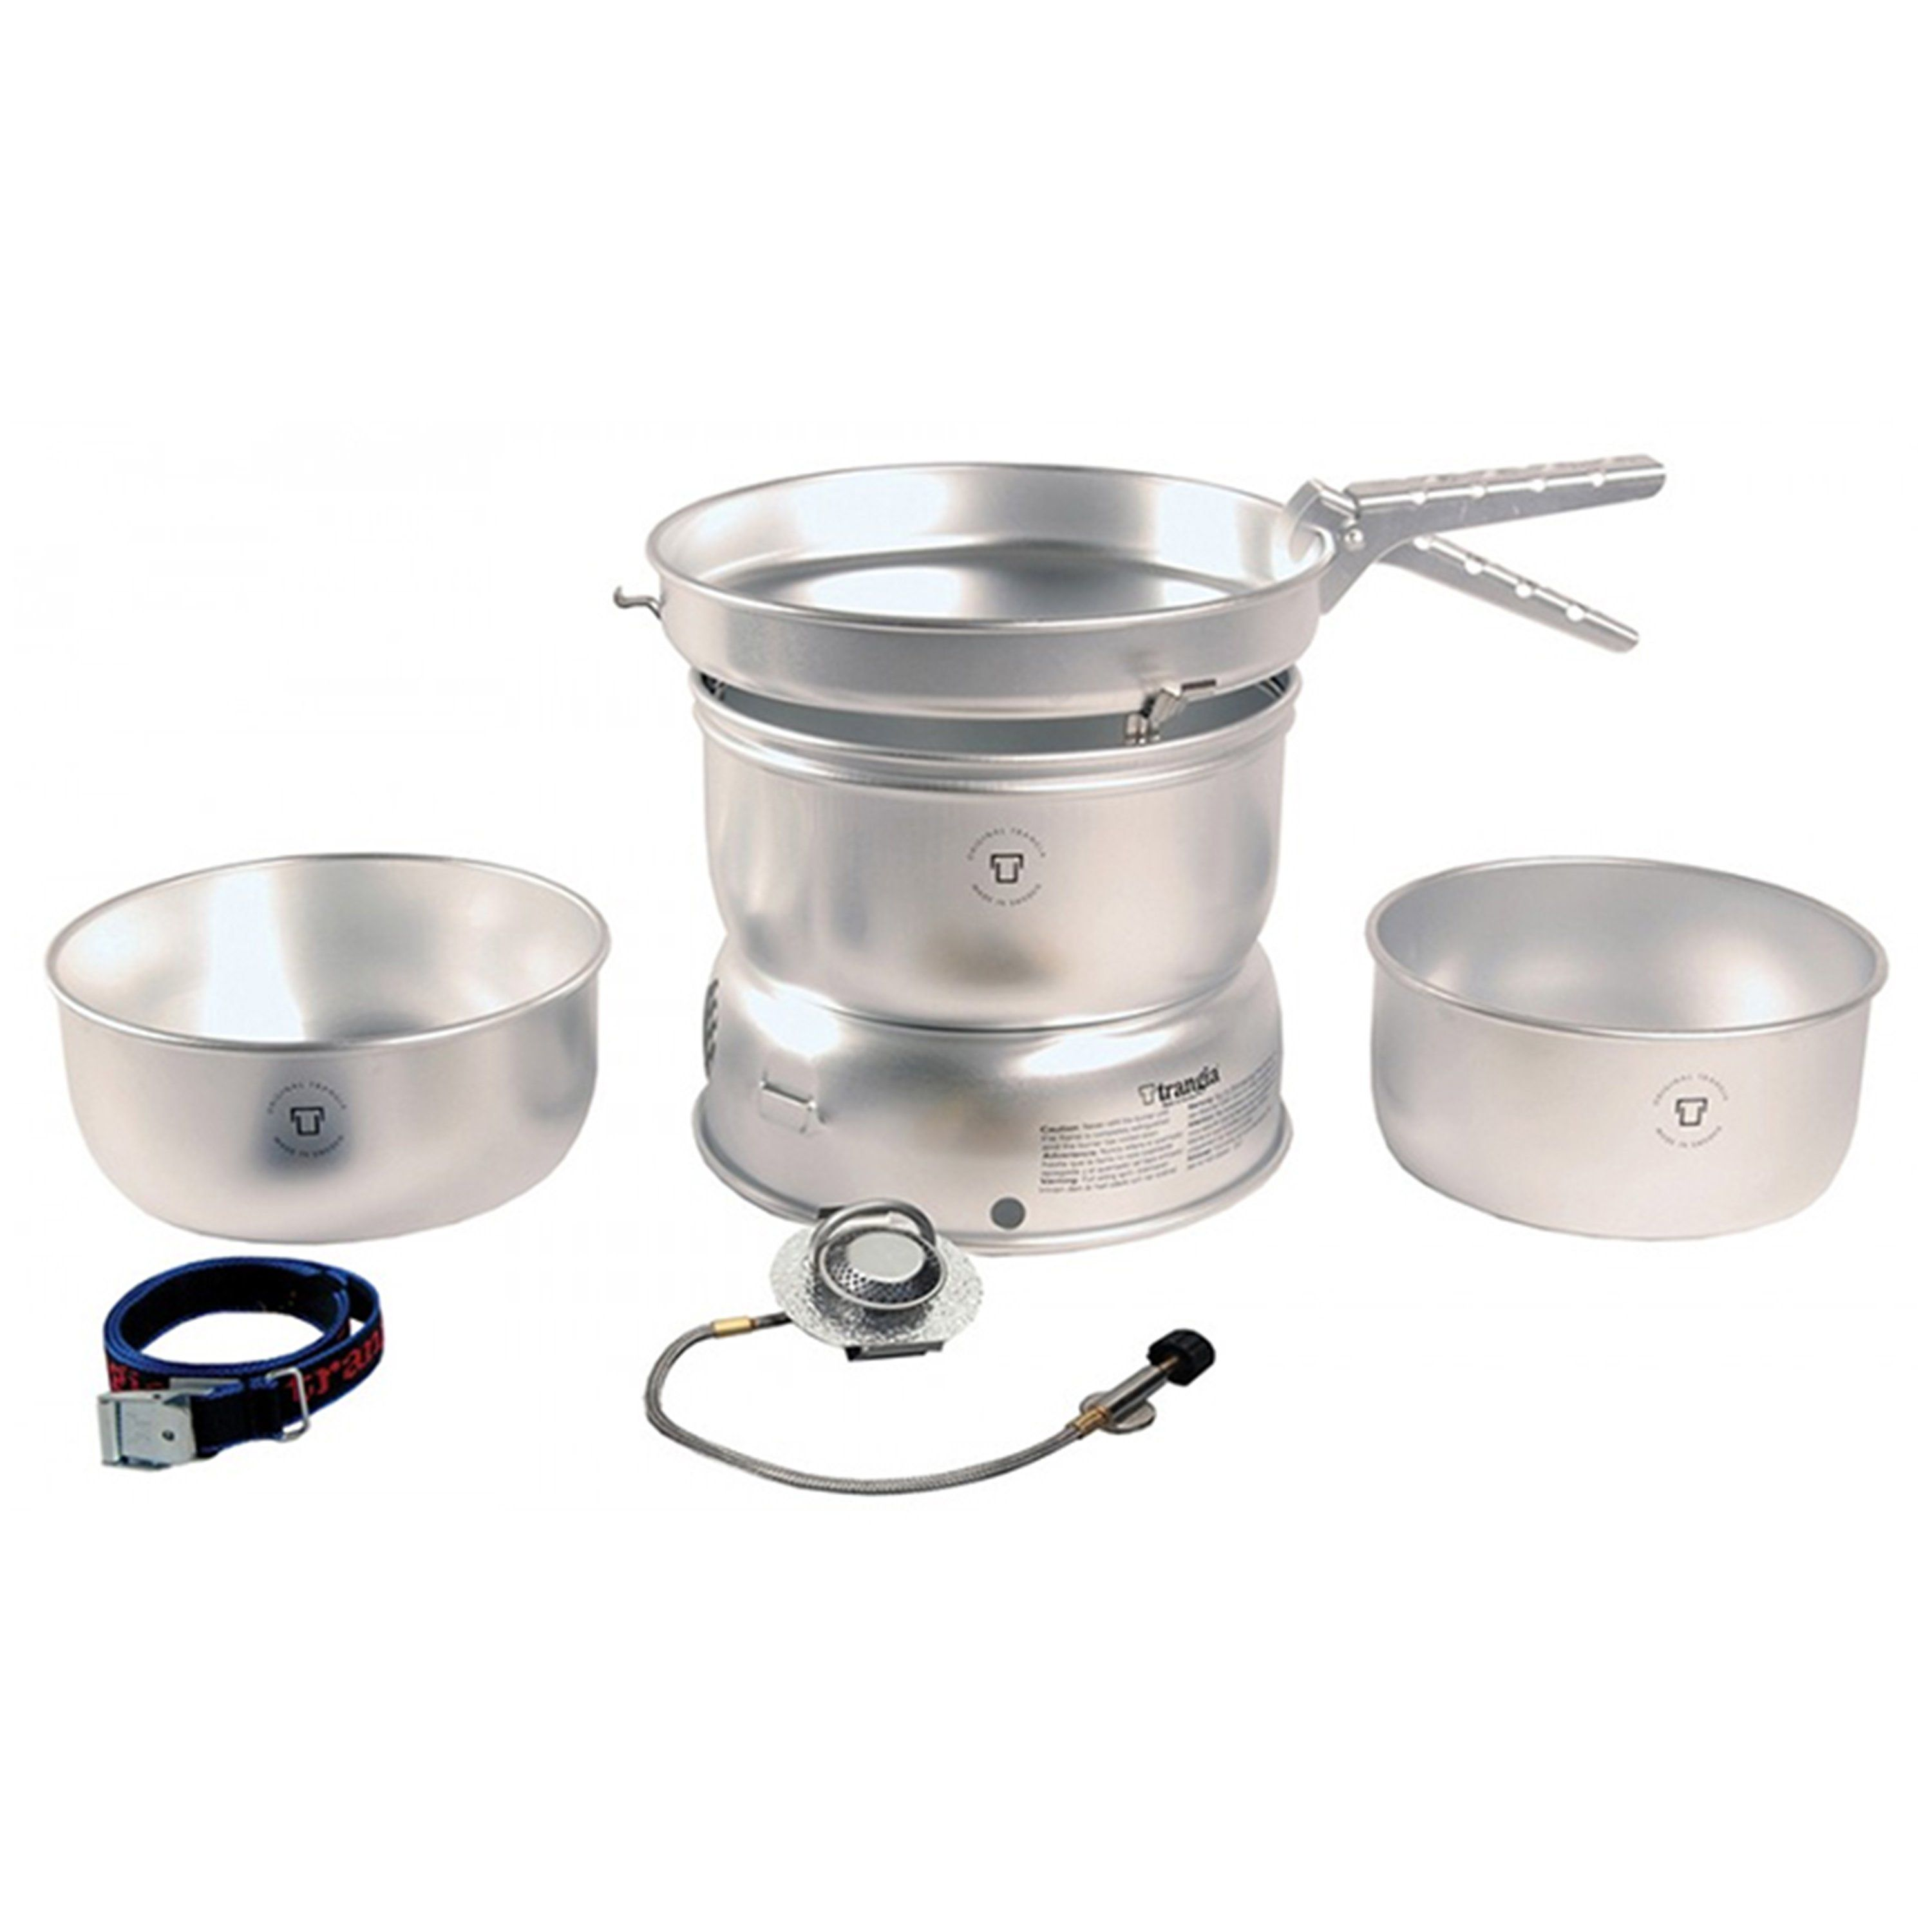 TRANGIA 27-1 Gas Cooking System (1-2 Person)